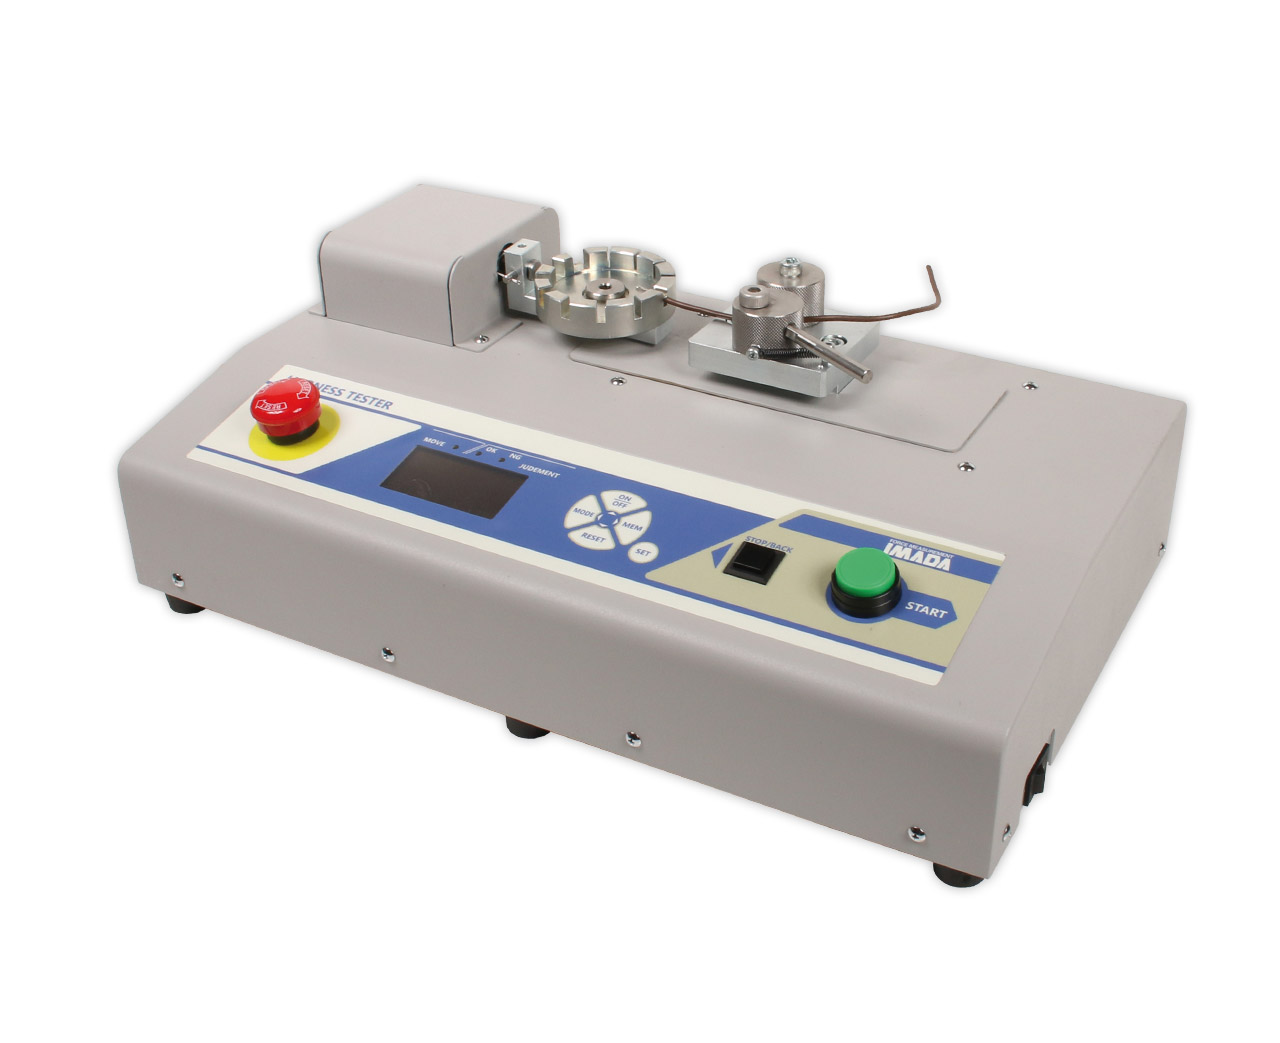 Pruefstand Act N moreover Esm Wire Testing Tstsys further Rotating Crimp besides Mark Es furthermore Crimp Inspection. on wire crimp pull tester